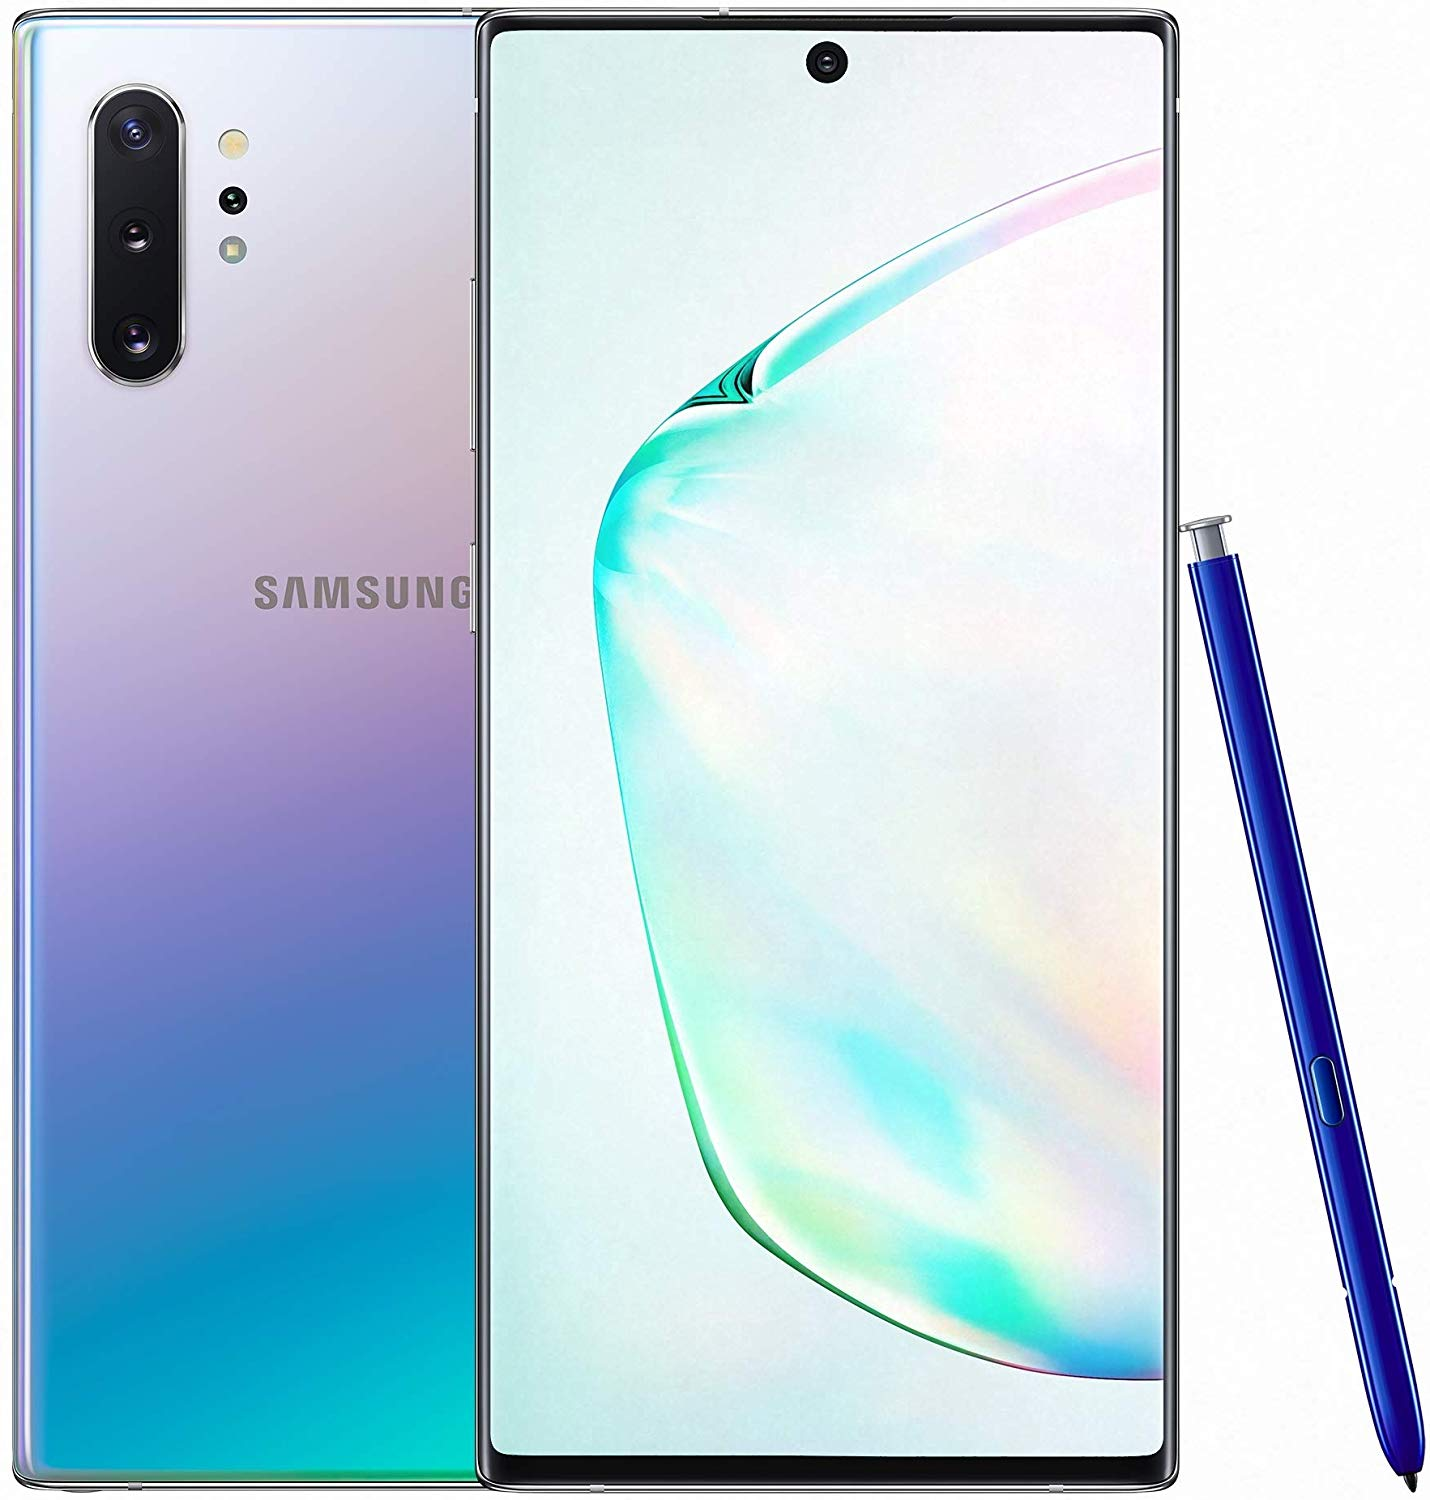 Samsung Galaxy Note 10+ (Aura Glow, 12GB RAM, 256GB Storage) with No Cost EMI/Additional Exchange Offers